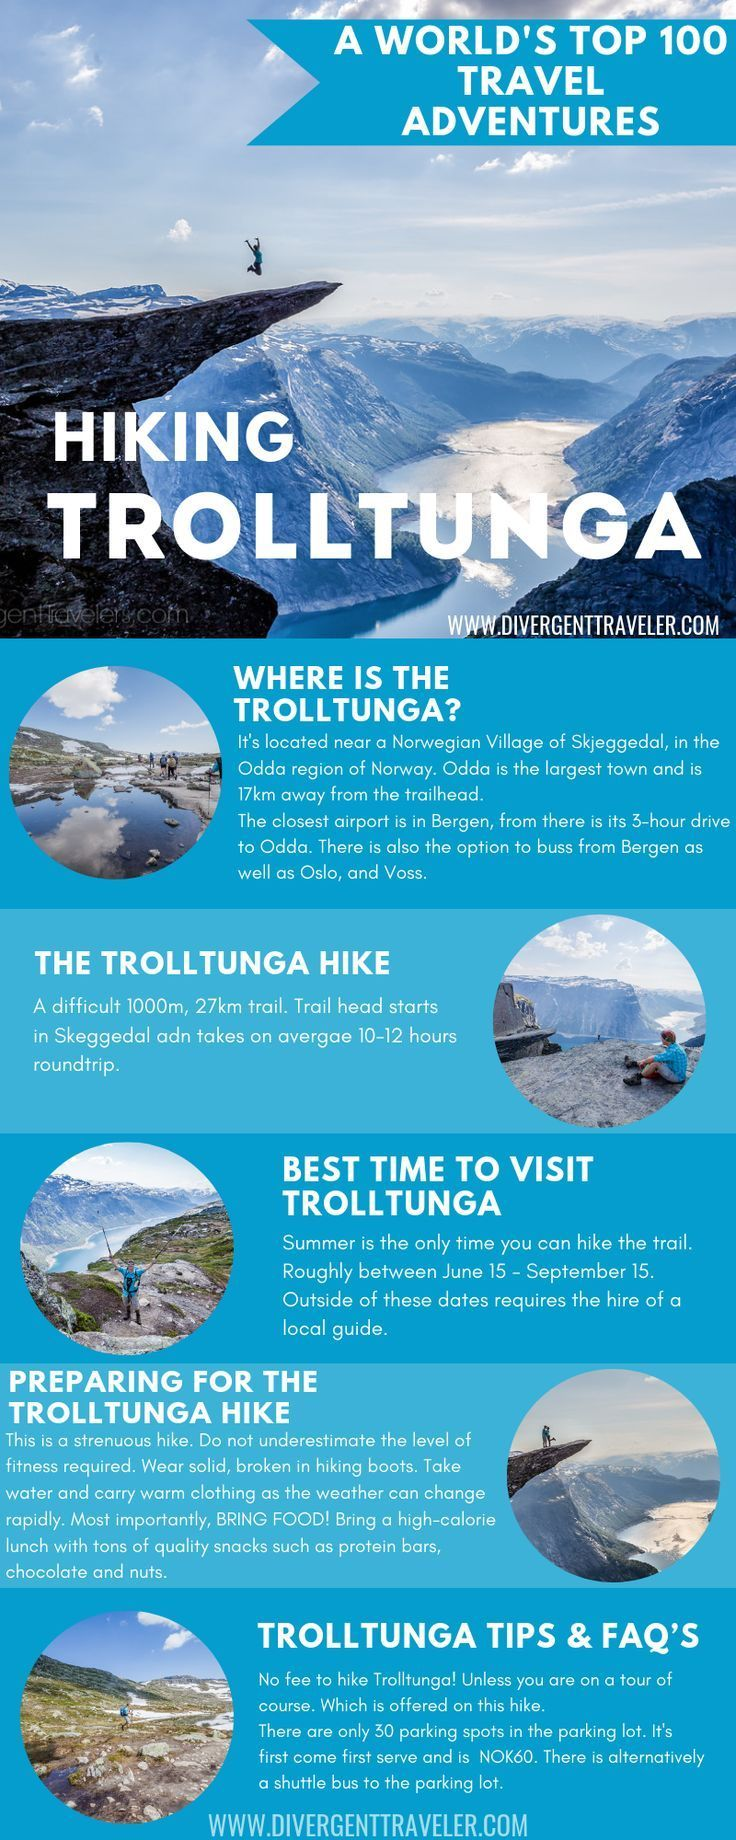 Hiking Trolltunga in Norway Adventure Travel Guide by America's Adventure Travel Couple the DivergentTravelers. With this guide to the Trolltunga Hike in Norway, you will find yourself prepared and ready to conquer the route in no time at all. Carry on reading for detailed information on location, the best time to go, what to take with you and importantly, what to expect on the hike itself. #HikingGuide #Norway #Troltunga #AdventureTravel #Planyourtrip #Travelguide #Hiking #Outdoors